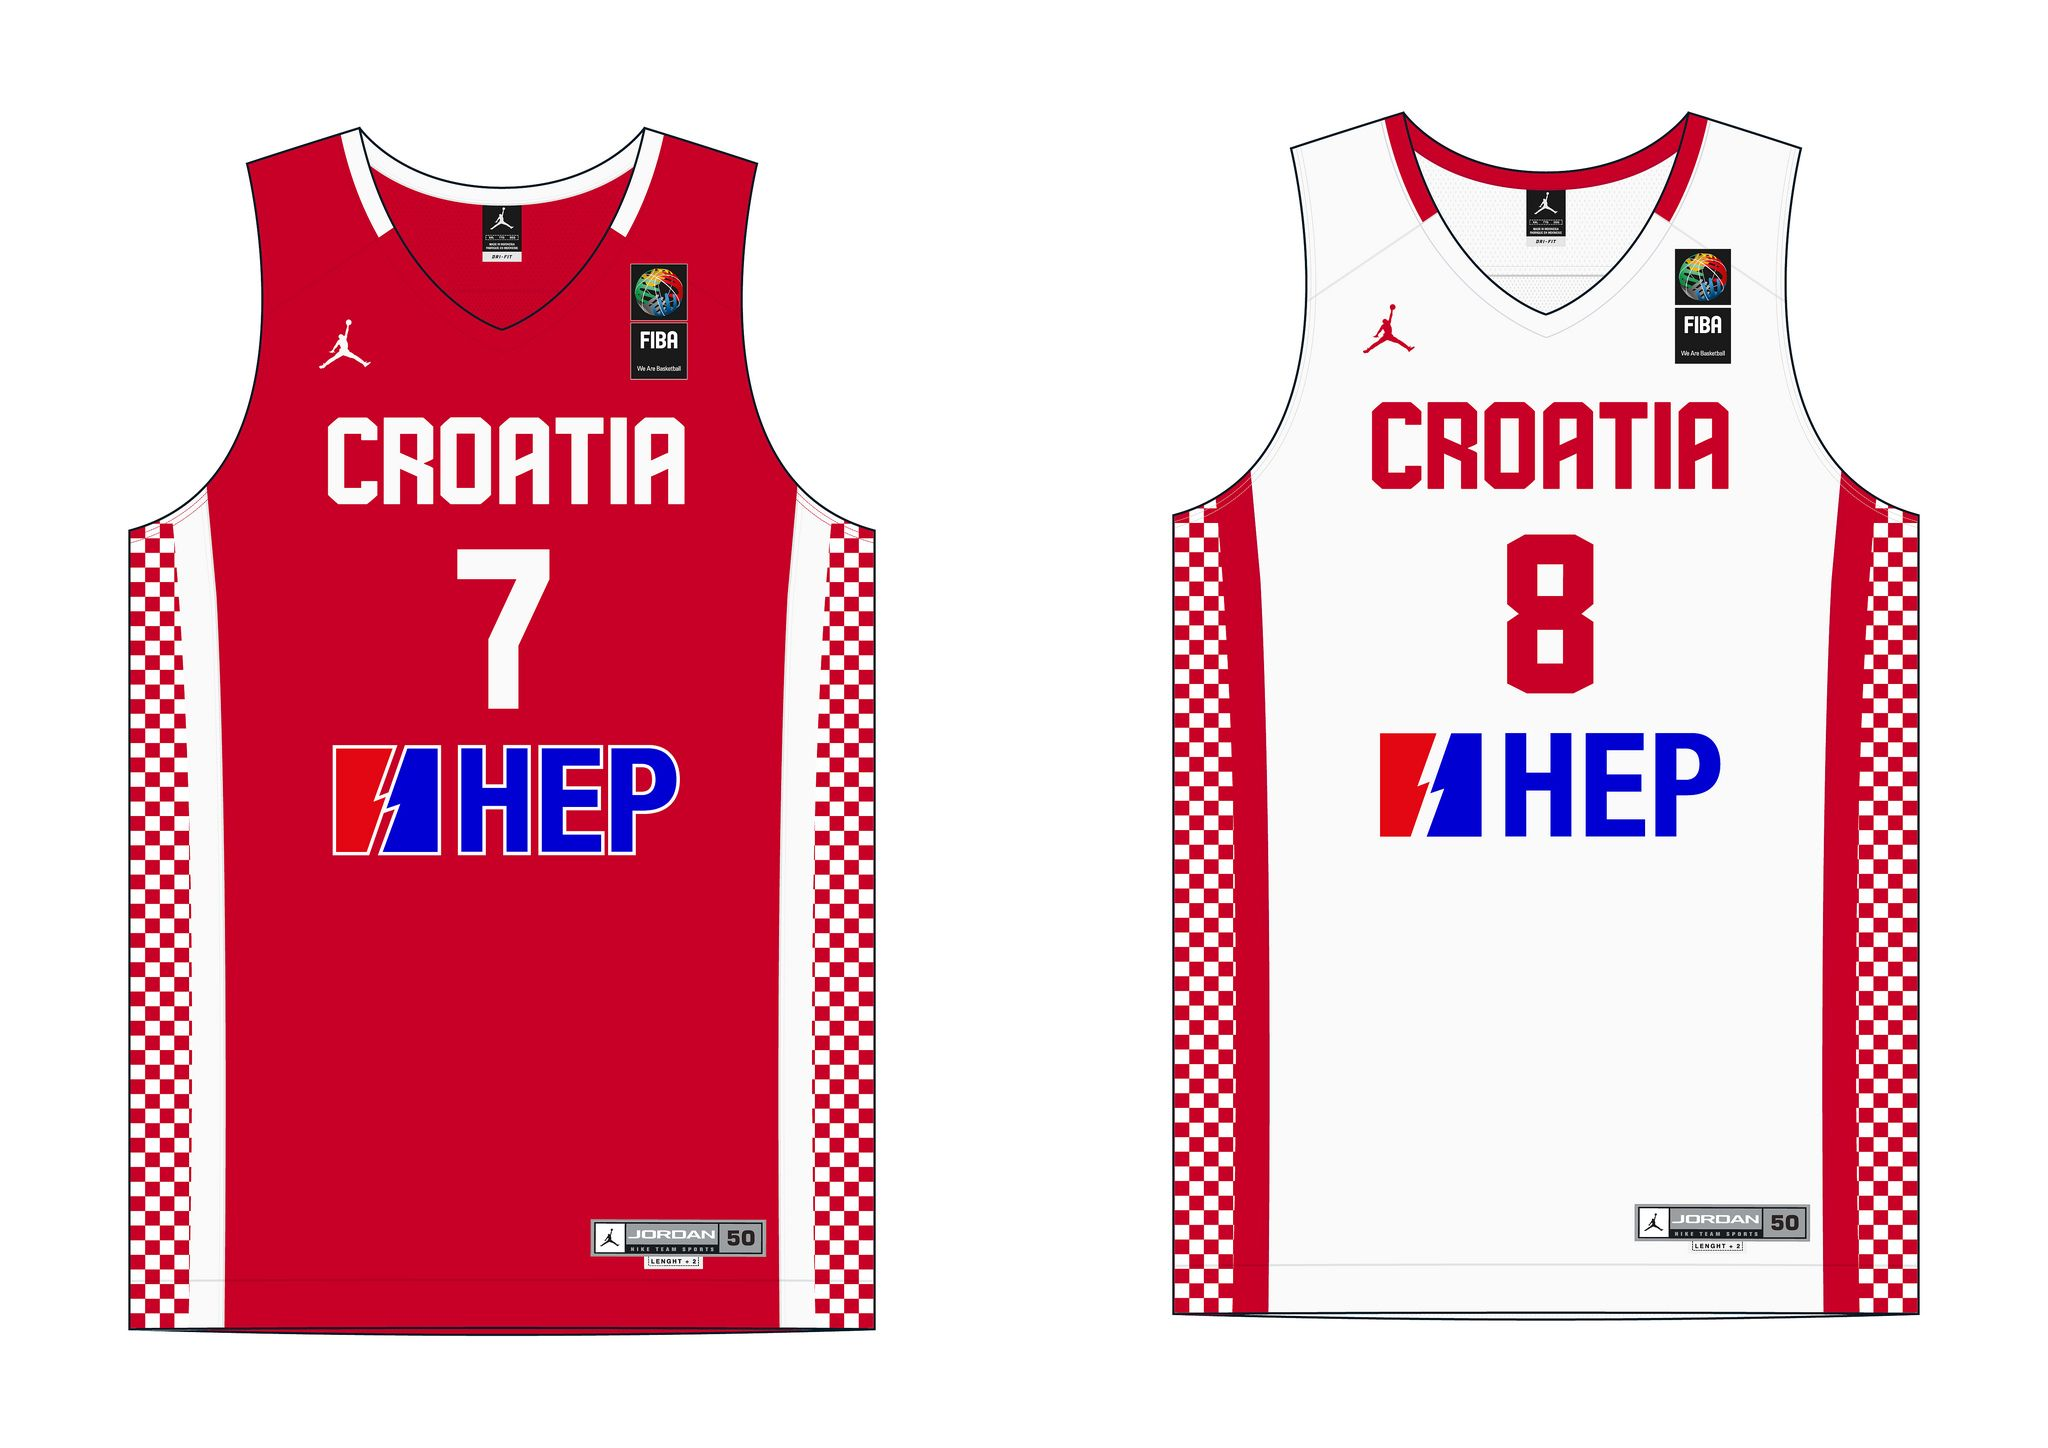 9156d7c58cc Croatia National Team jersey (FIBA World Championship 2014, Spain) | Flickr  - Photo Sharing!